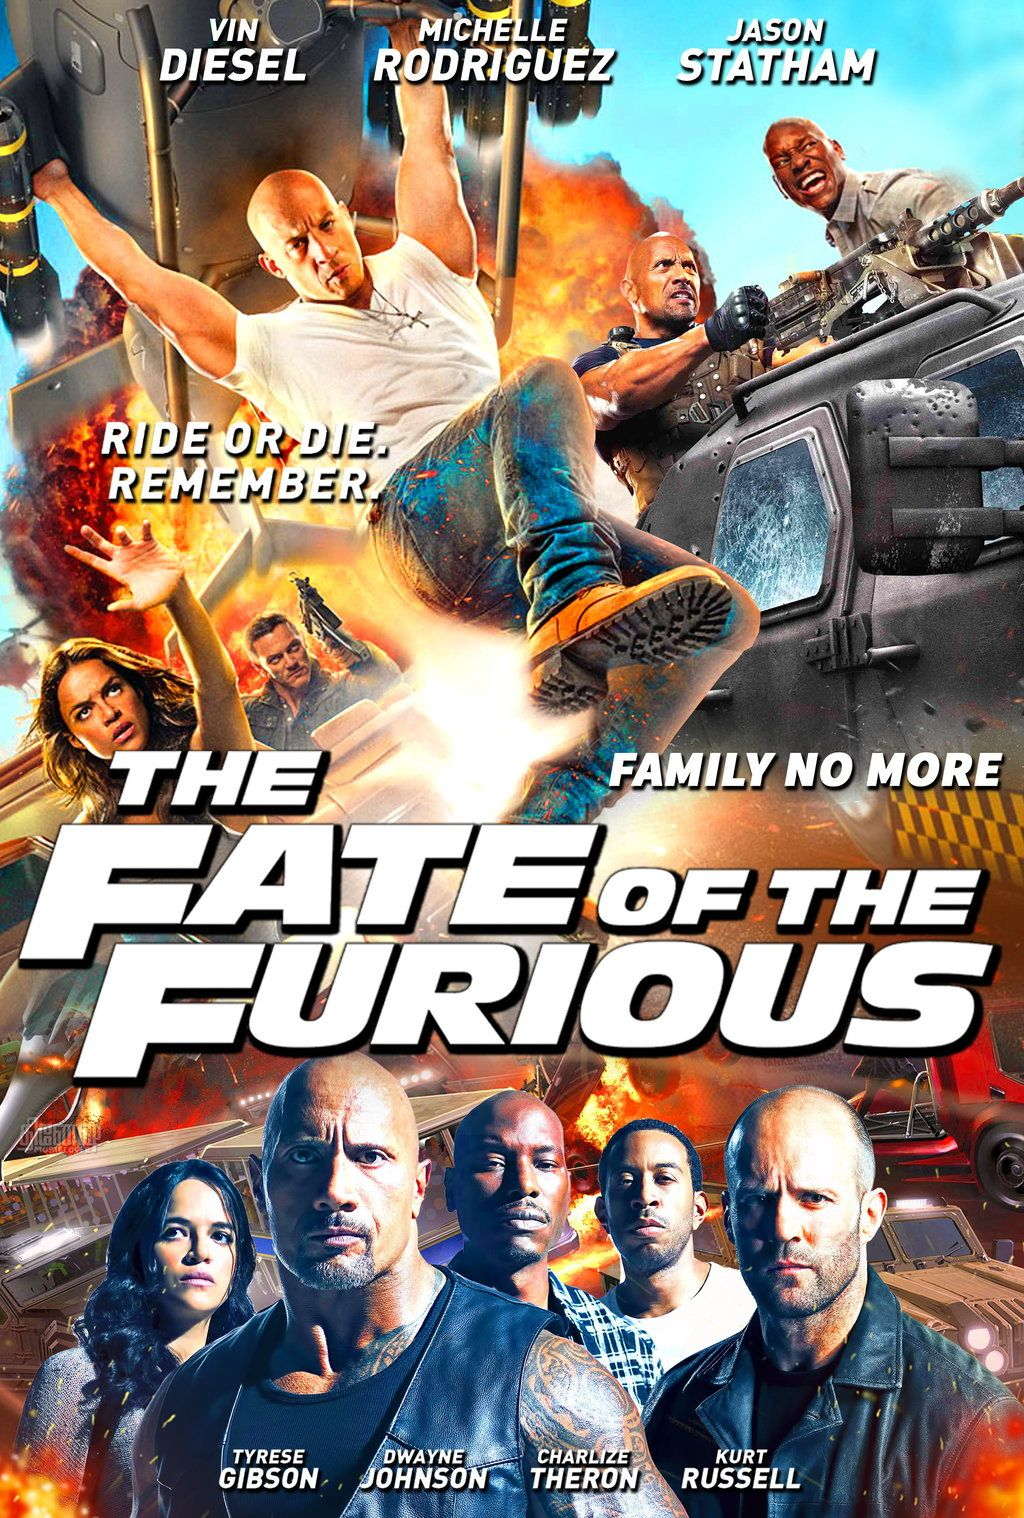 the fate of the furious 2017 free download at lestopfilms